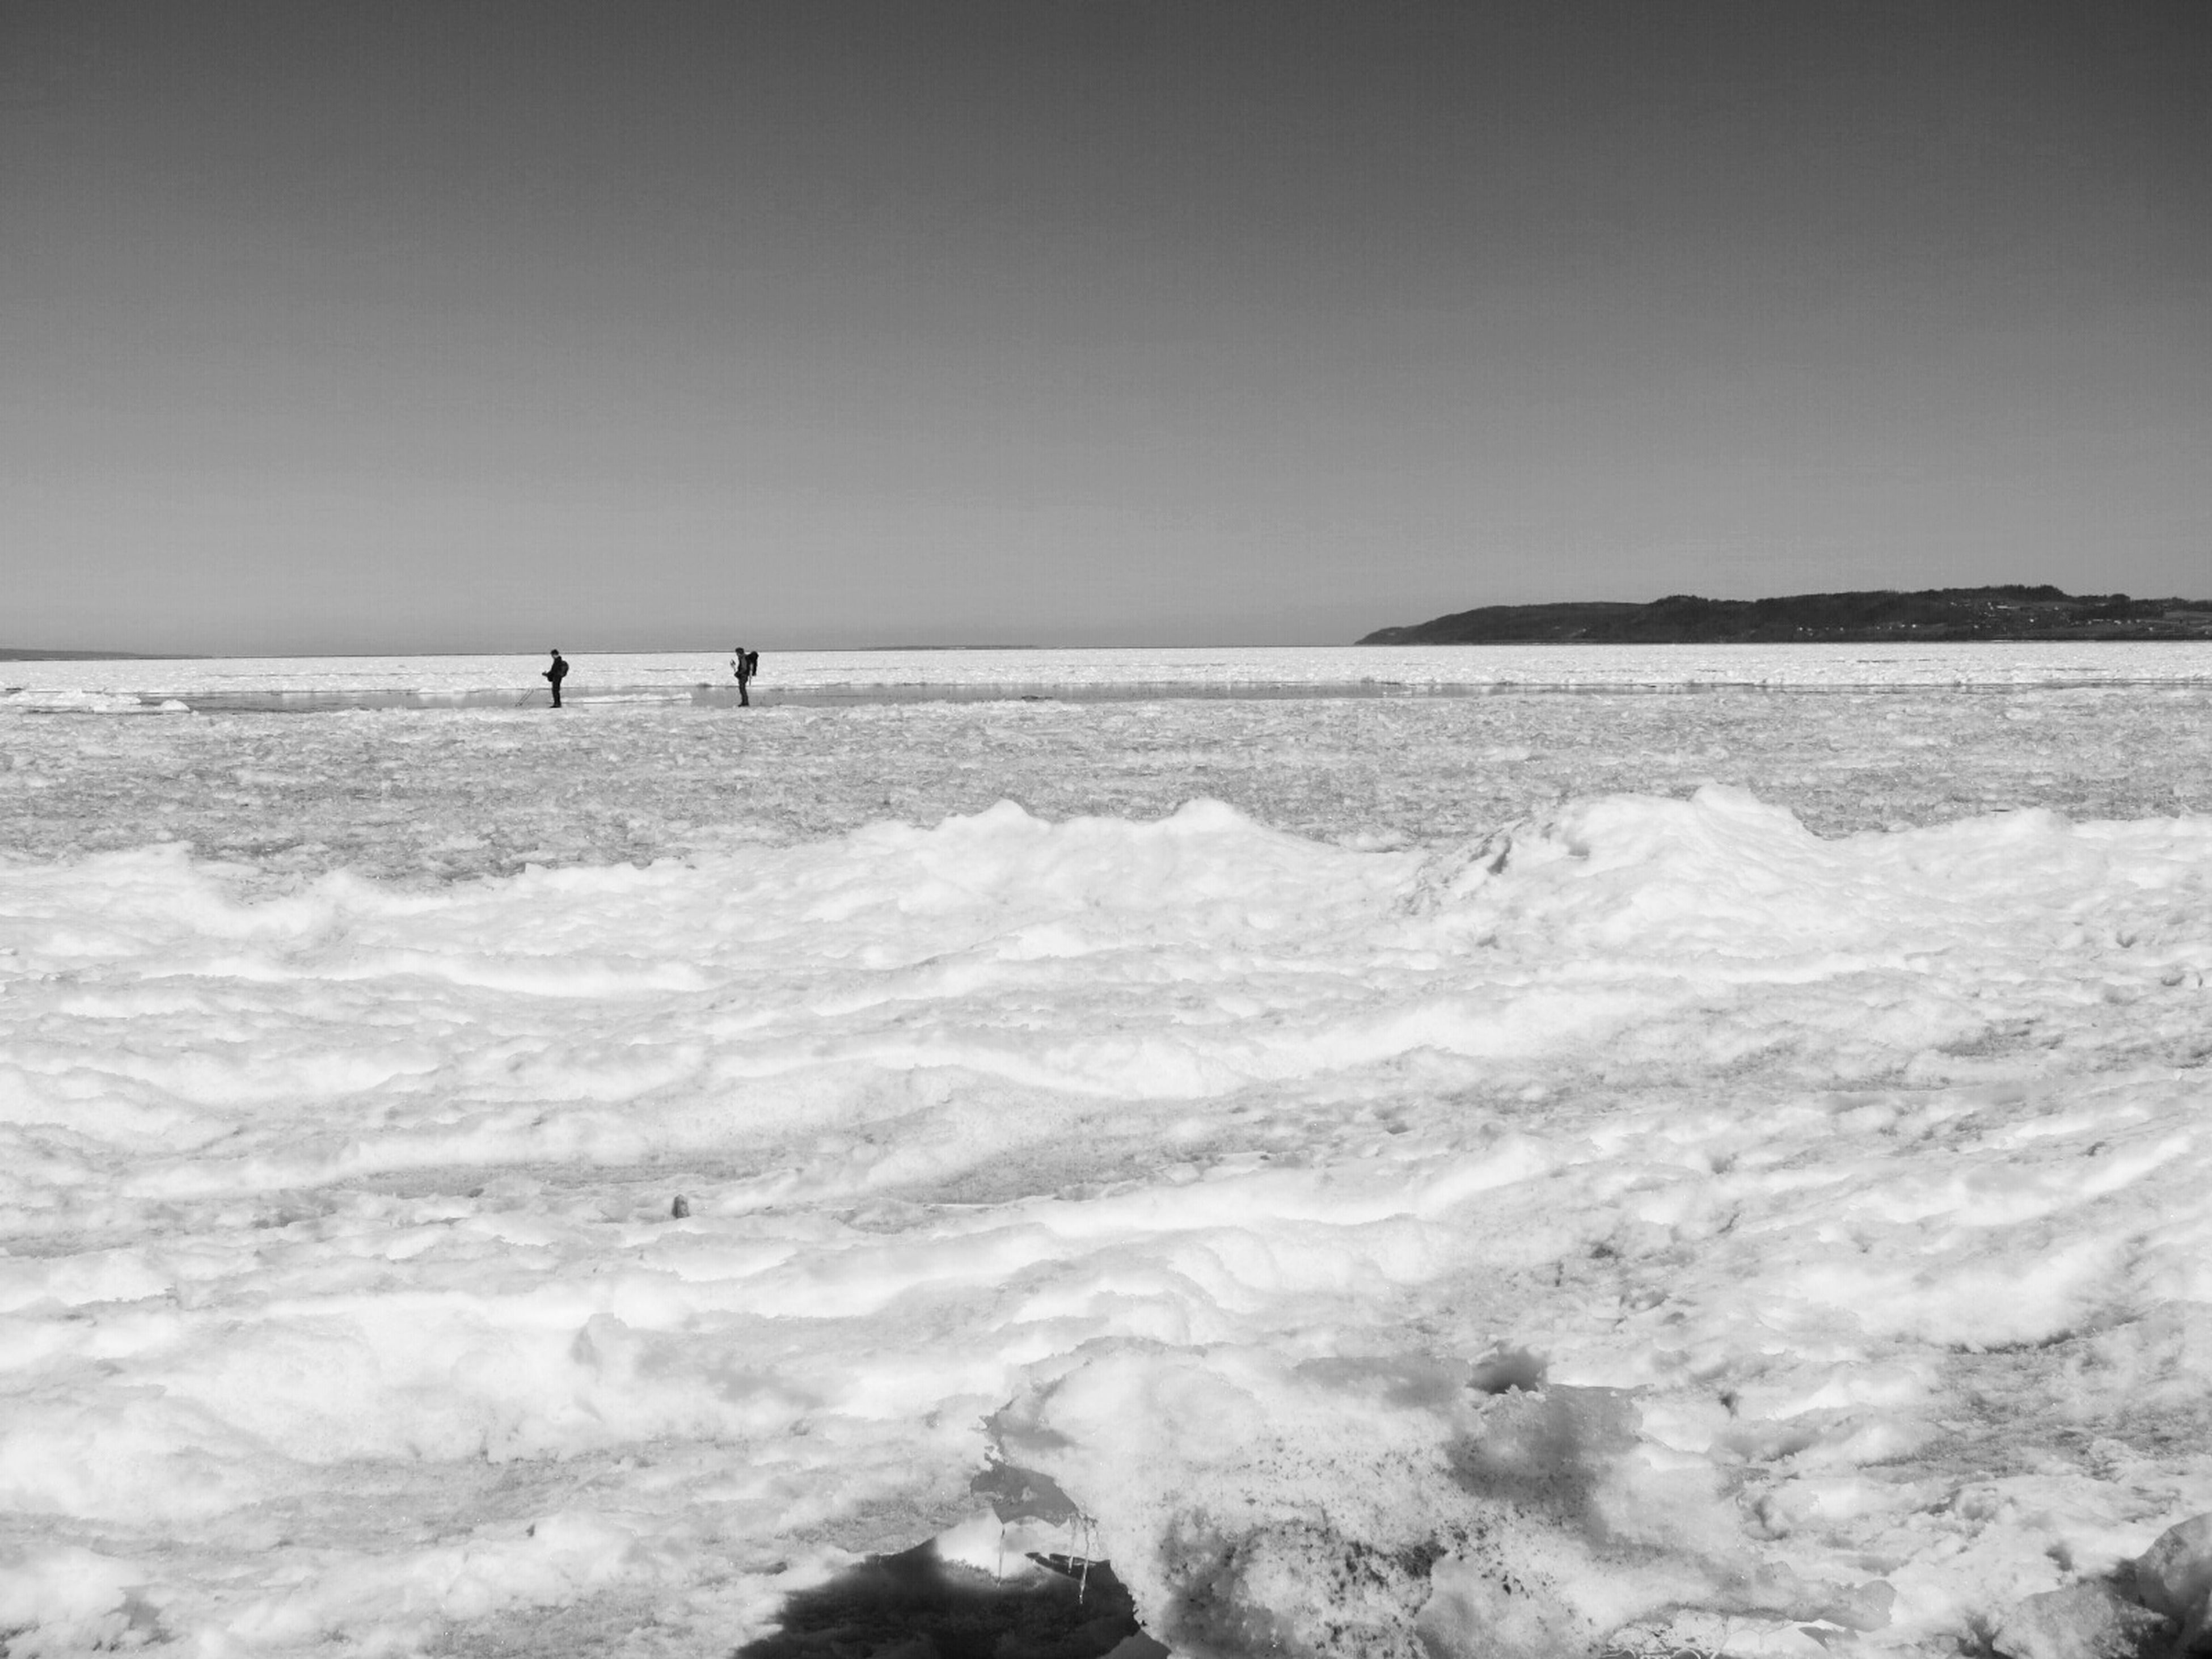 Skating, probably not recommended a day like today. Skater Lake Divelandscape Blackandwhite